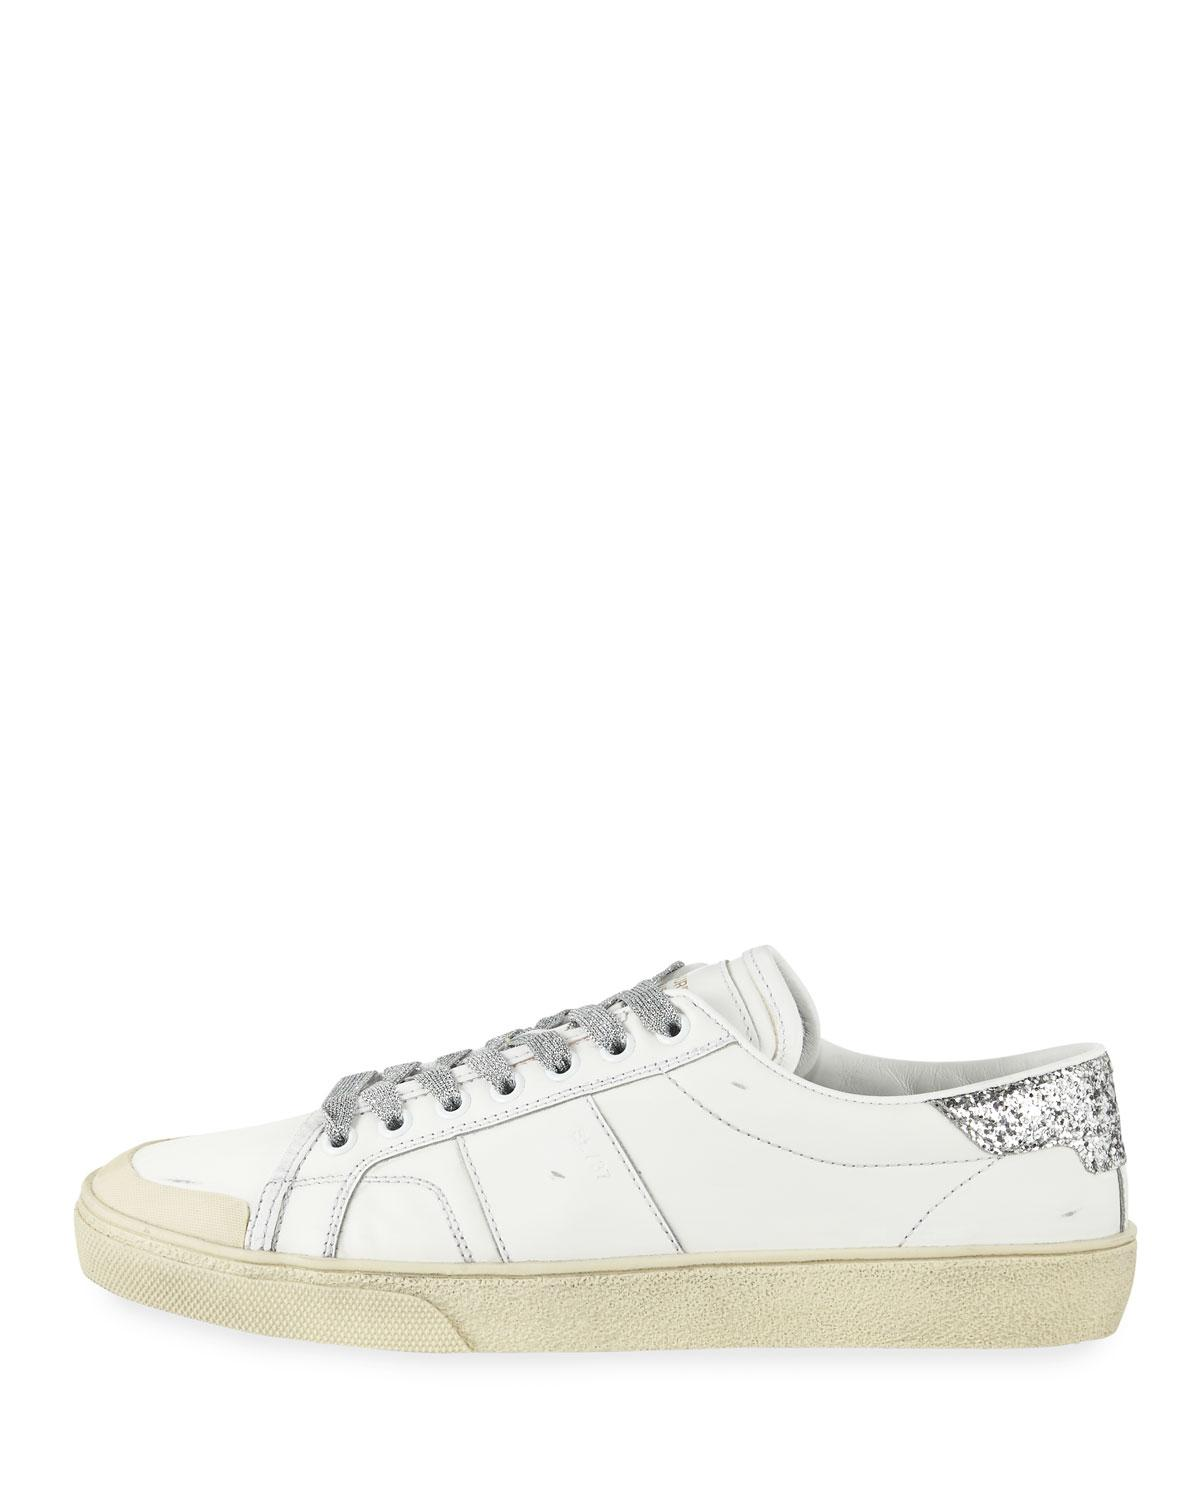 d28f8c56415 Lyst - Saint Laurent Leather Low-top Glitter Platform Sneakers in White